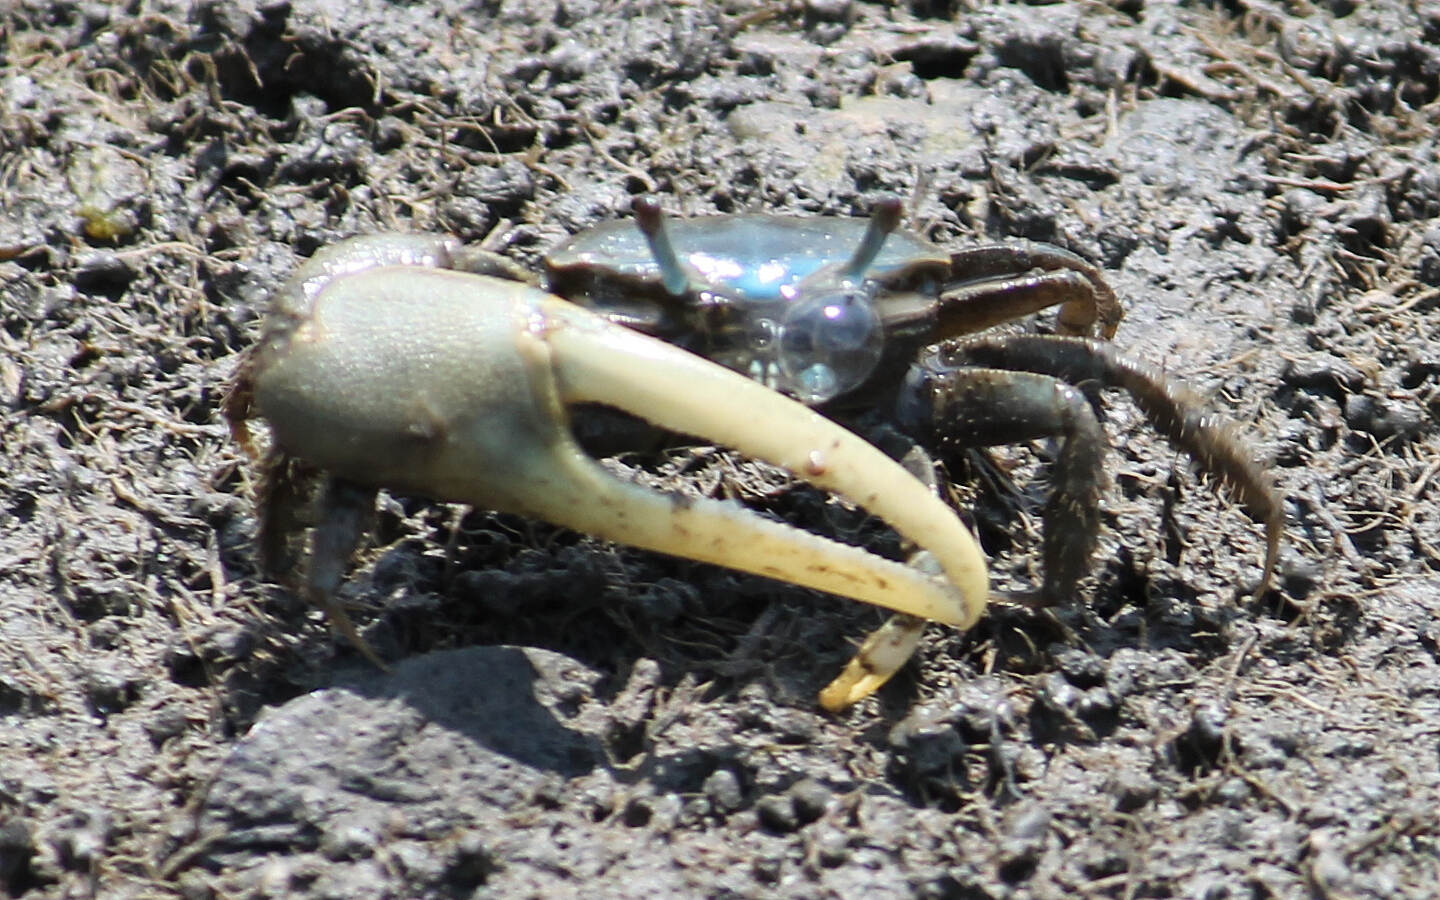 Branford Trolley Trail Blowing Bubbles One of dozens of fiddler crabs just a foot or two off the trail.